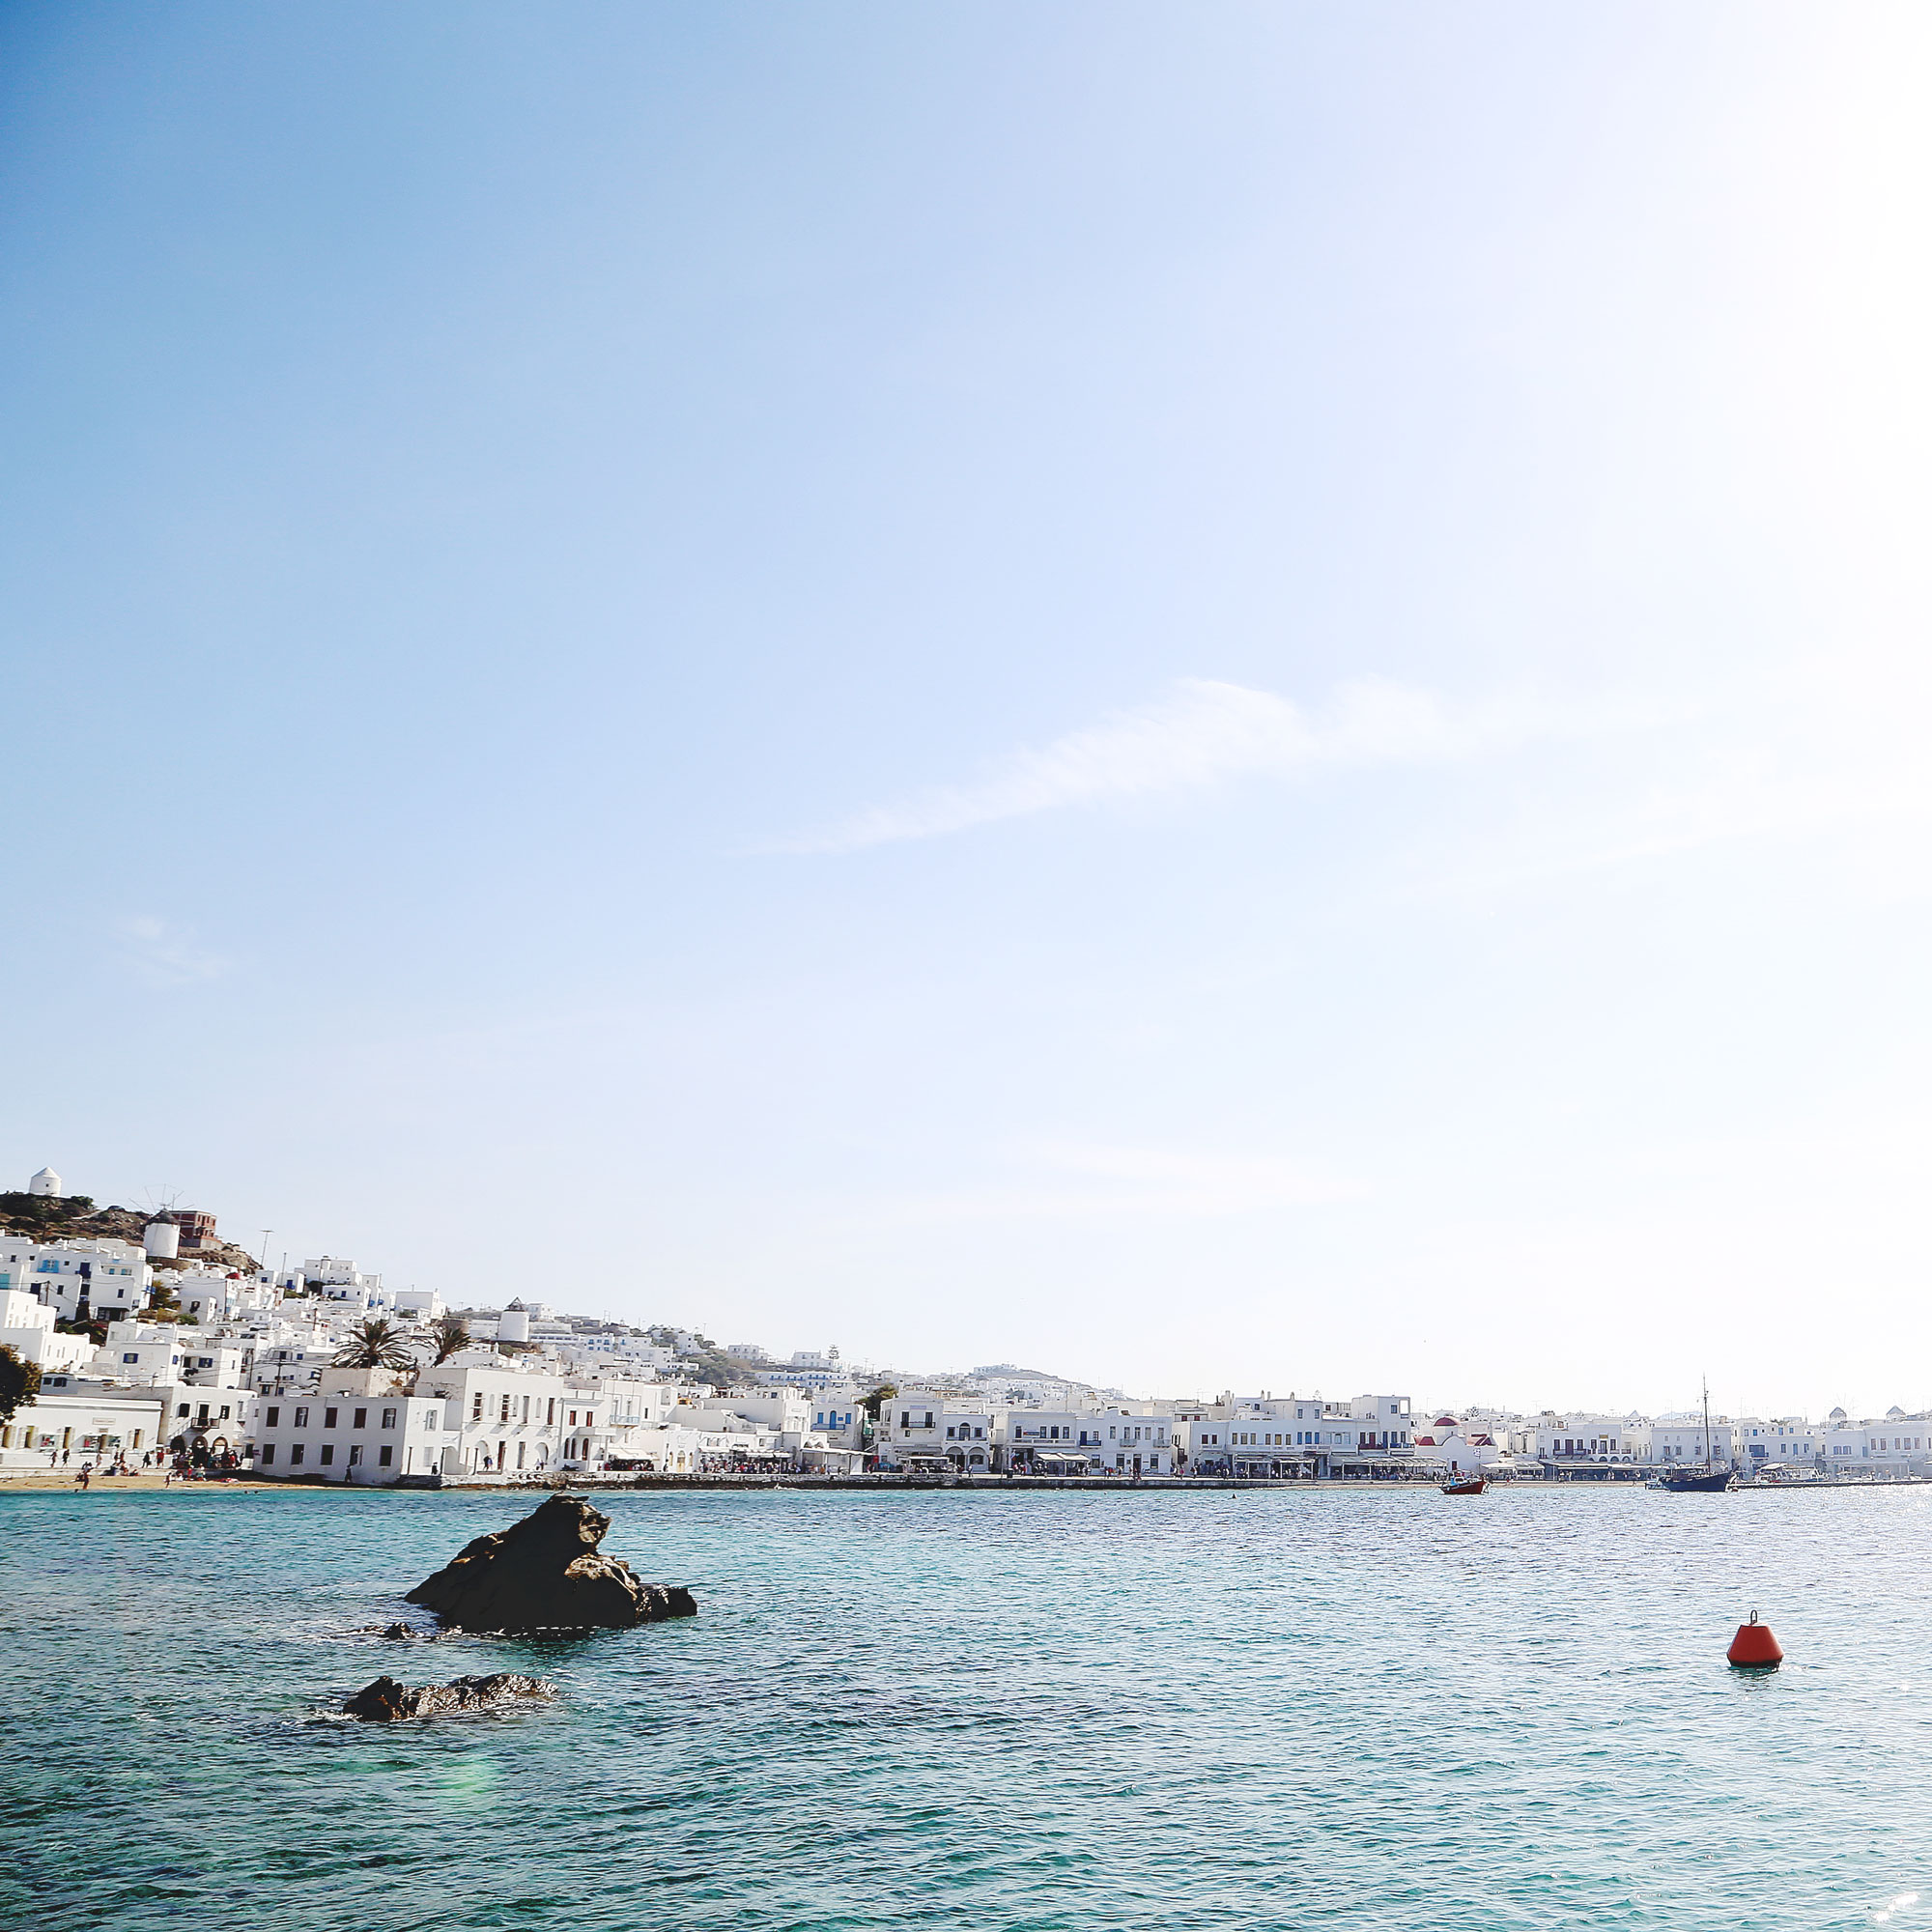 Mykonos Travel Guide - what to see and do in Mykonos, Greece